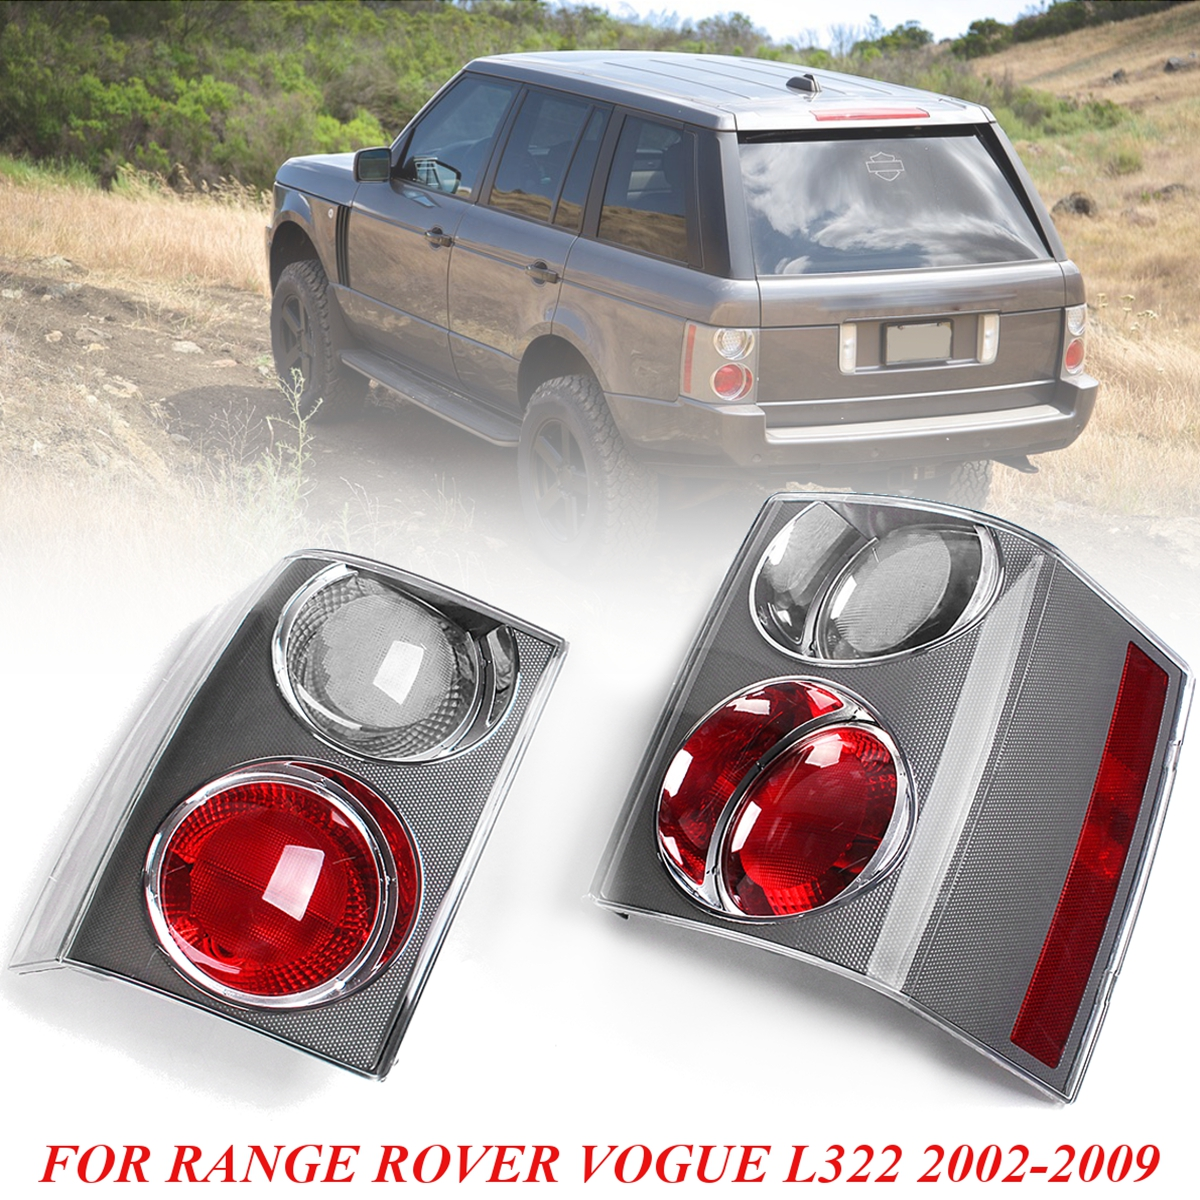 for Land Rover Tail Light 1 Pair Tail Brake Stop Light Rear Tail Lights Bumper Reflector For RANGE ROVER VOGUE L322 2002-2009 double commercial milk shake blender professional power blender mixer juicer food processor